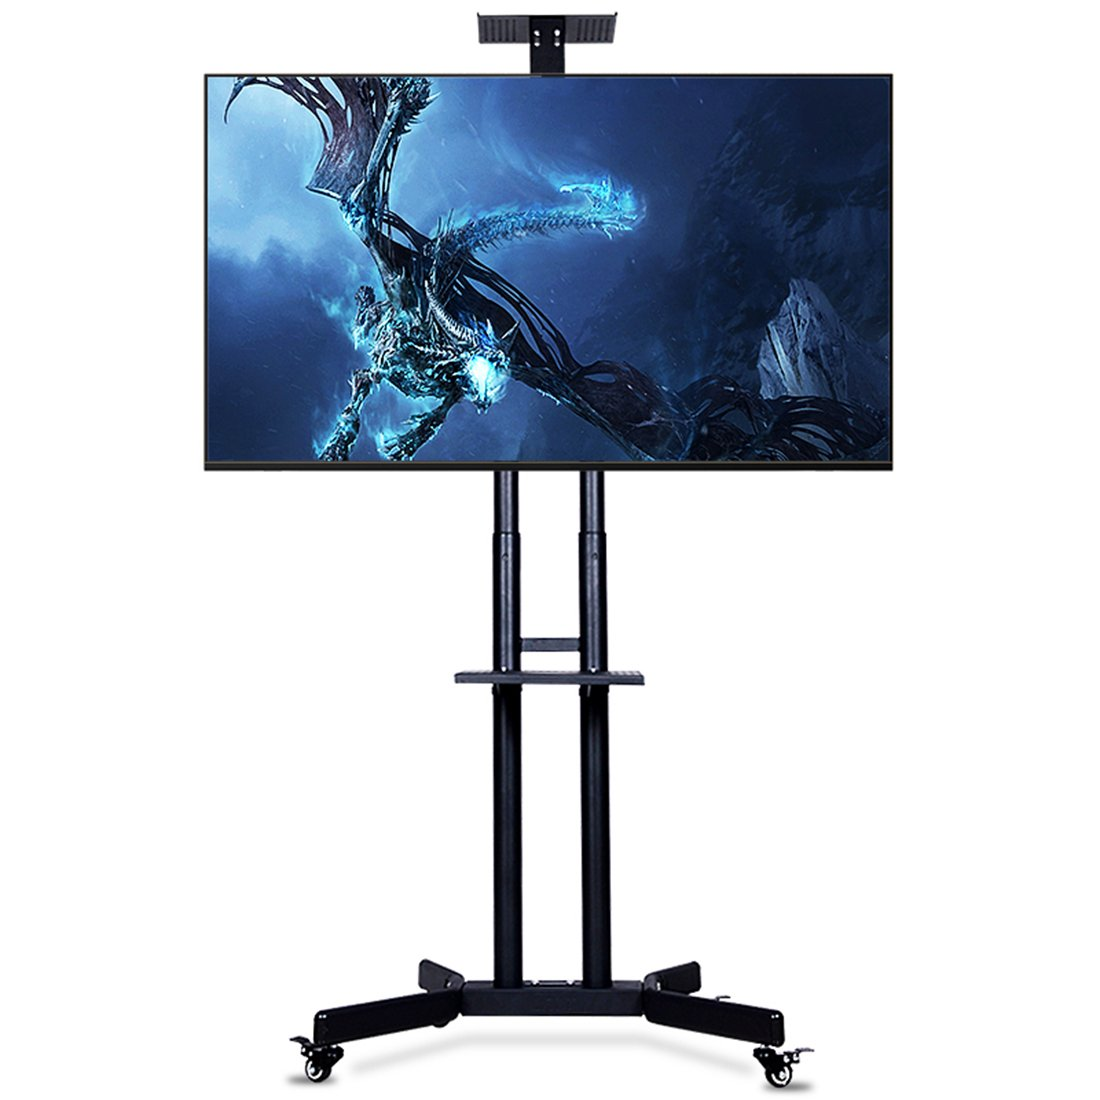 CNYF PTS002 TV Cart for LCD LED Plasma Flat Panel Stand w/Wheels Mobile fits 32